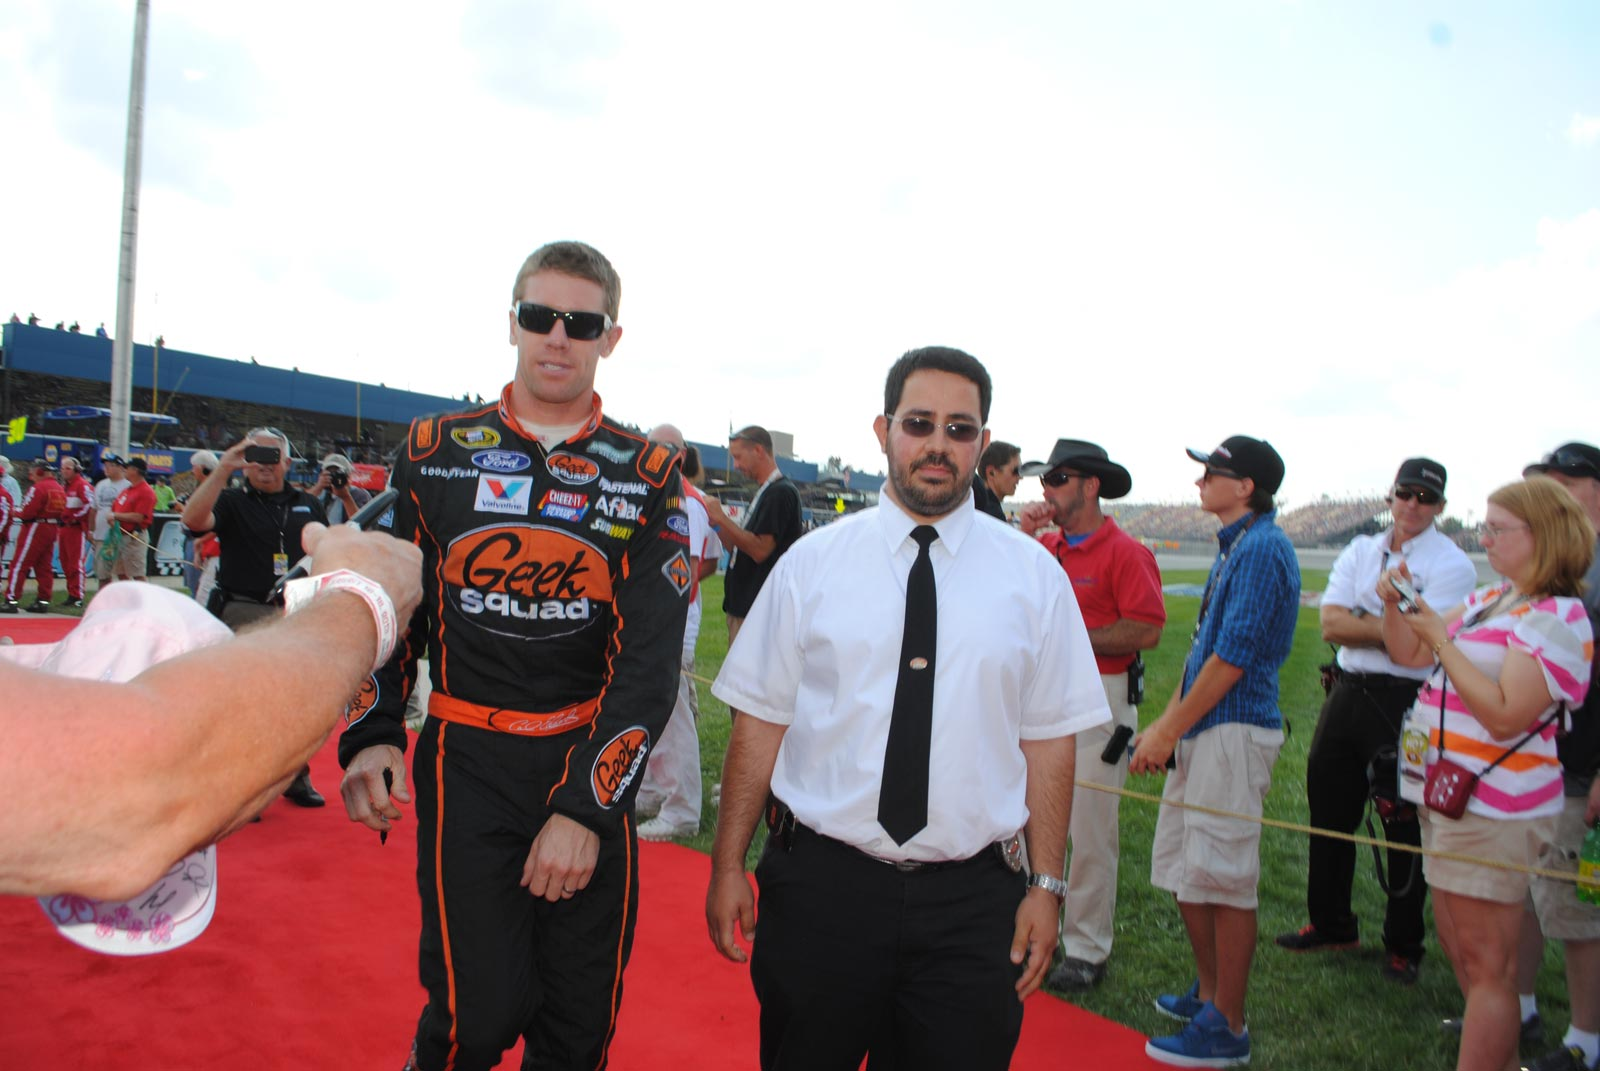 michigan-carl-edwards